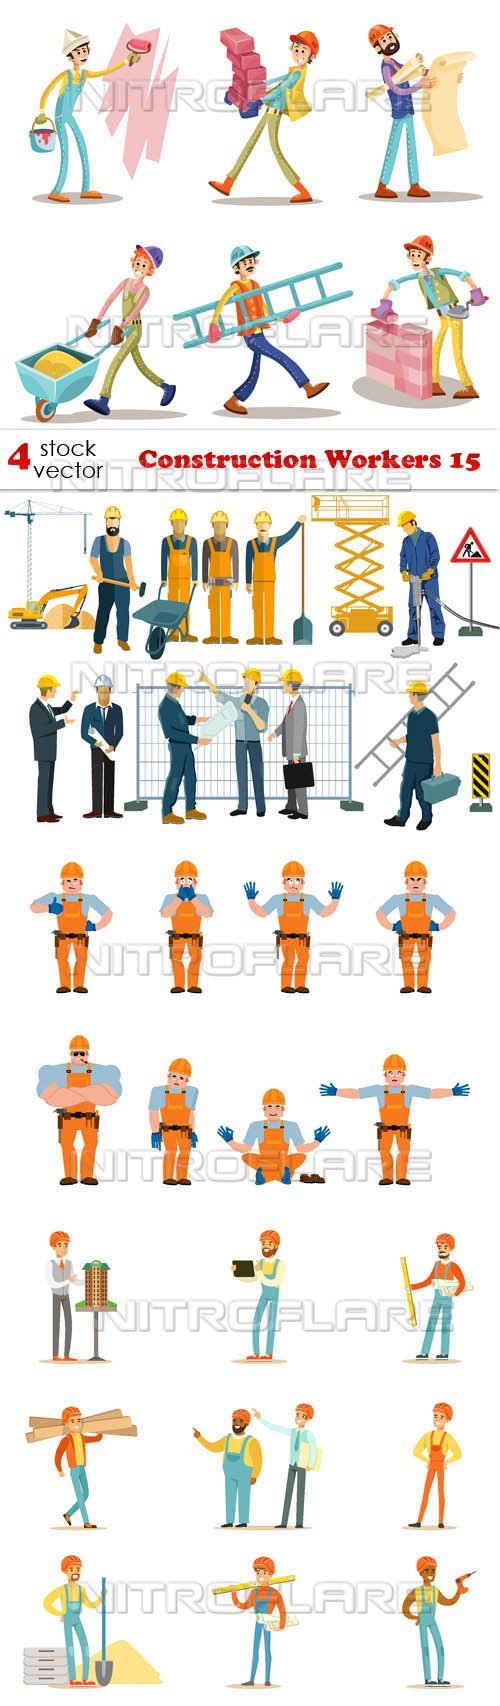 Vectors - Construction Workers 15